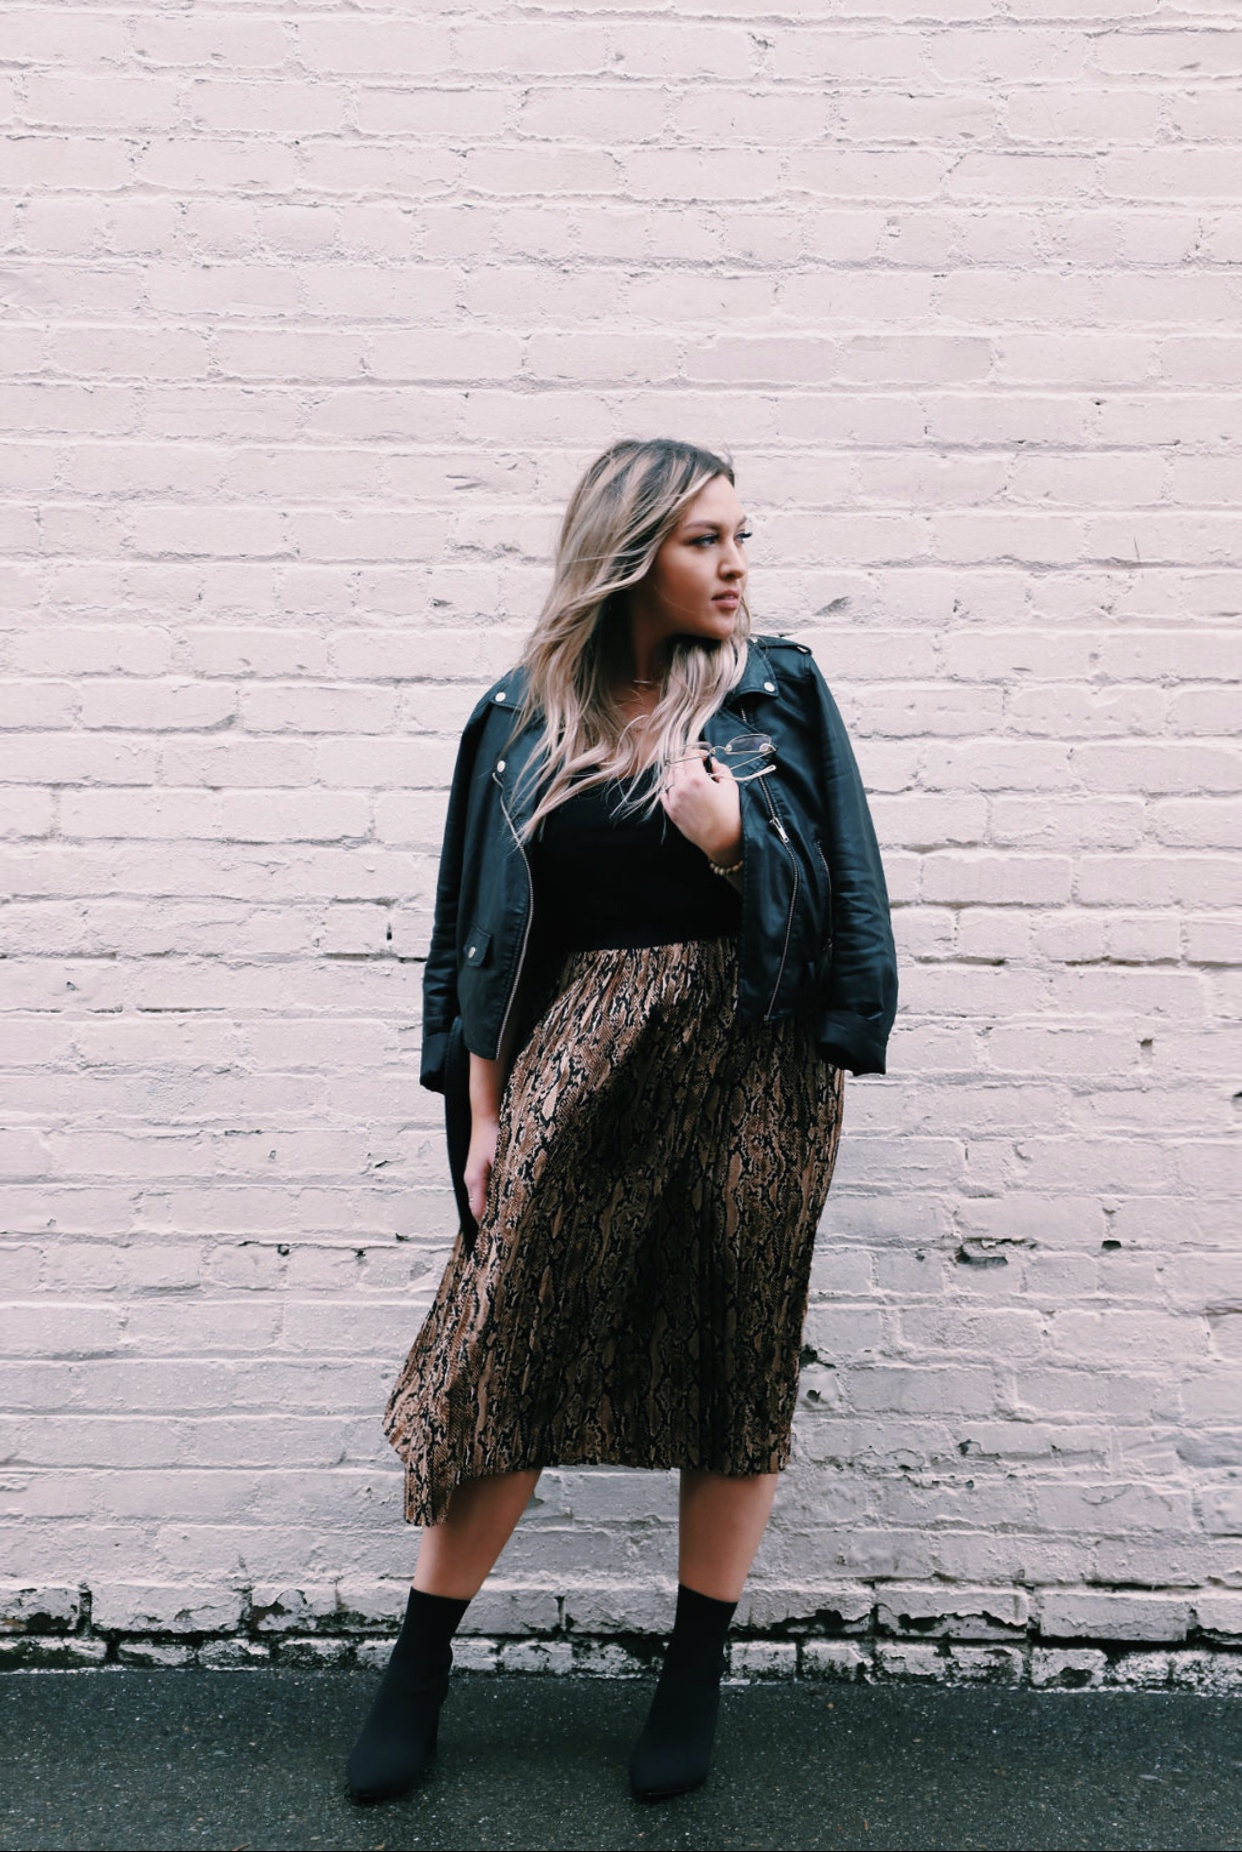 How to find your signature style - fashion and style advice from Fig + Ivy Collective founder Ivy Pemberton of Roseville, California